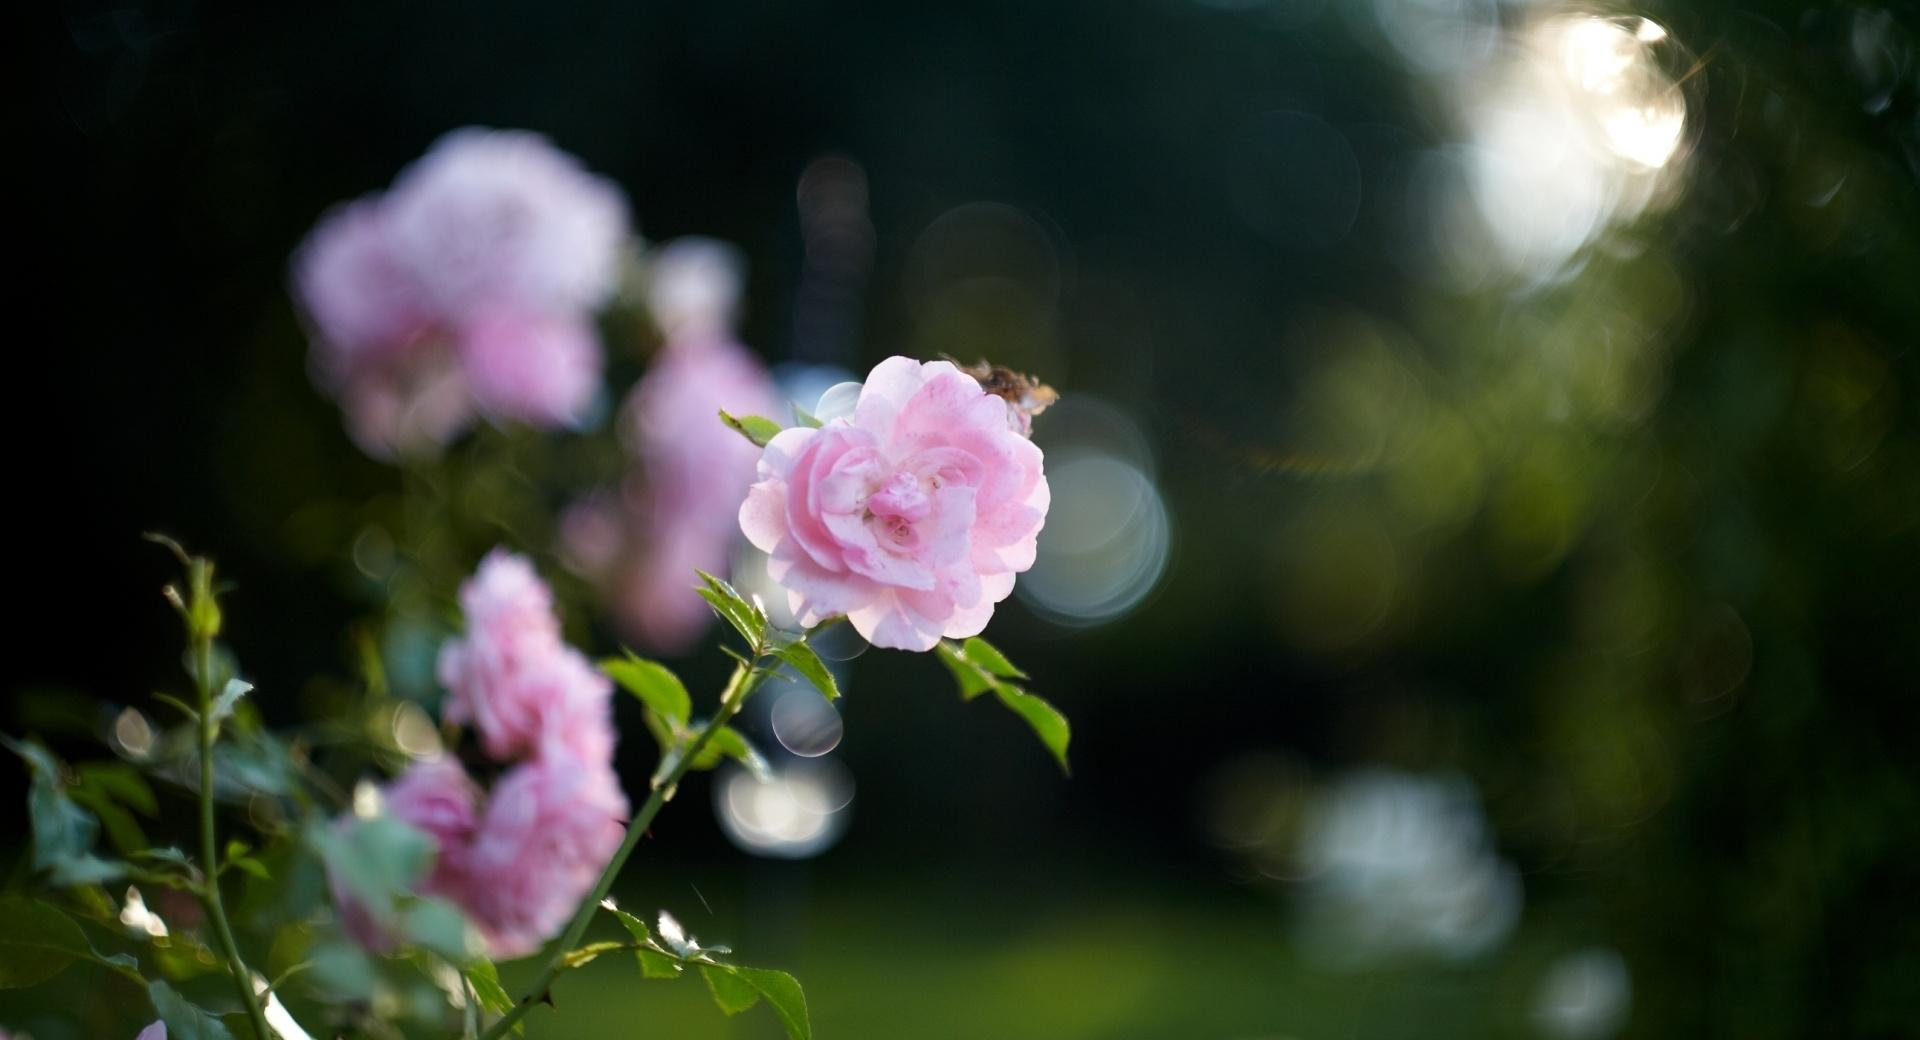 Pink Rose Bokeh at 1024 x 1024 iPad size wallpapers HD quality